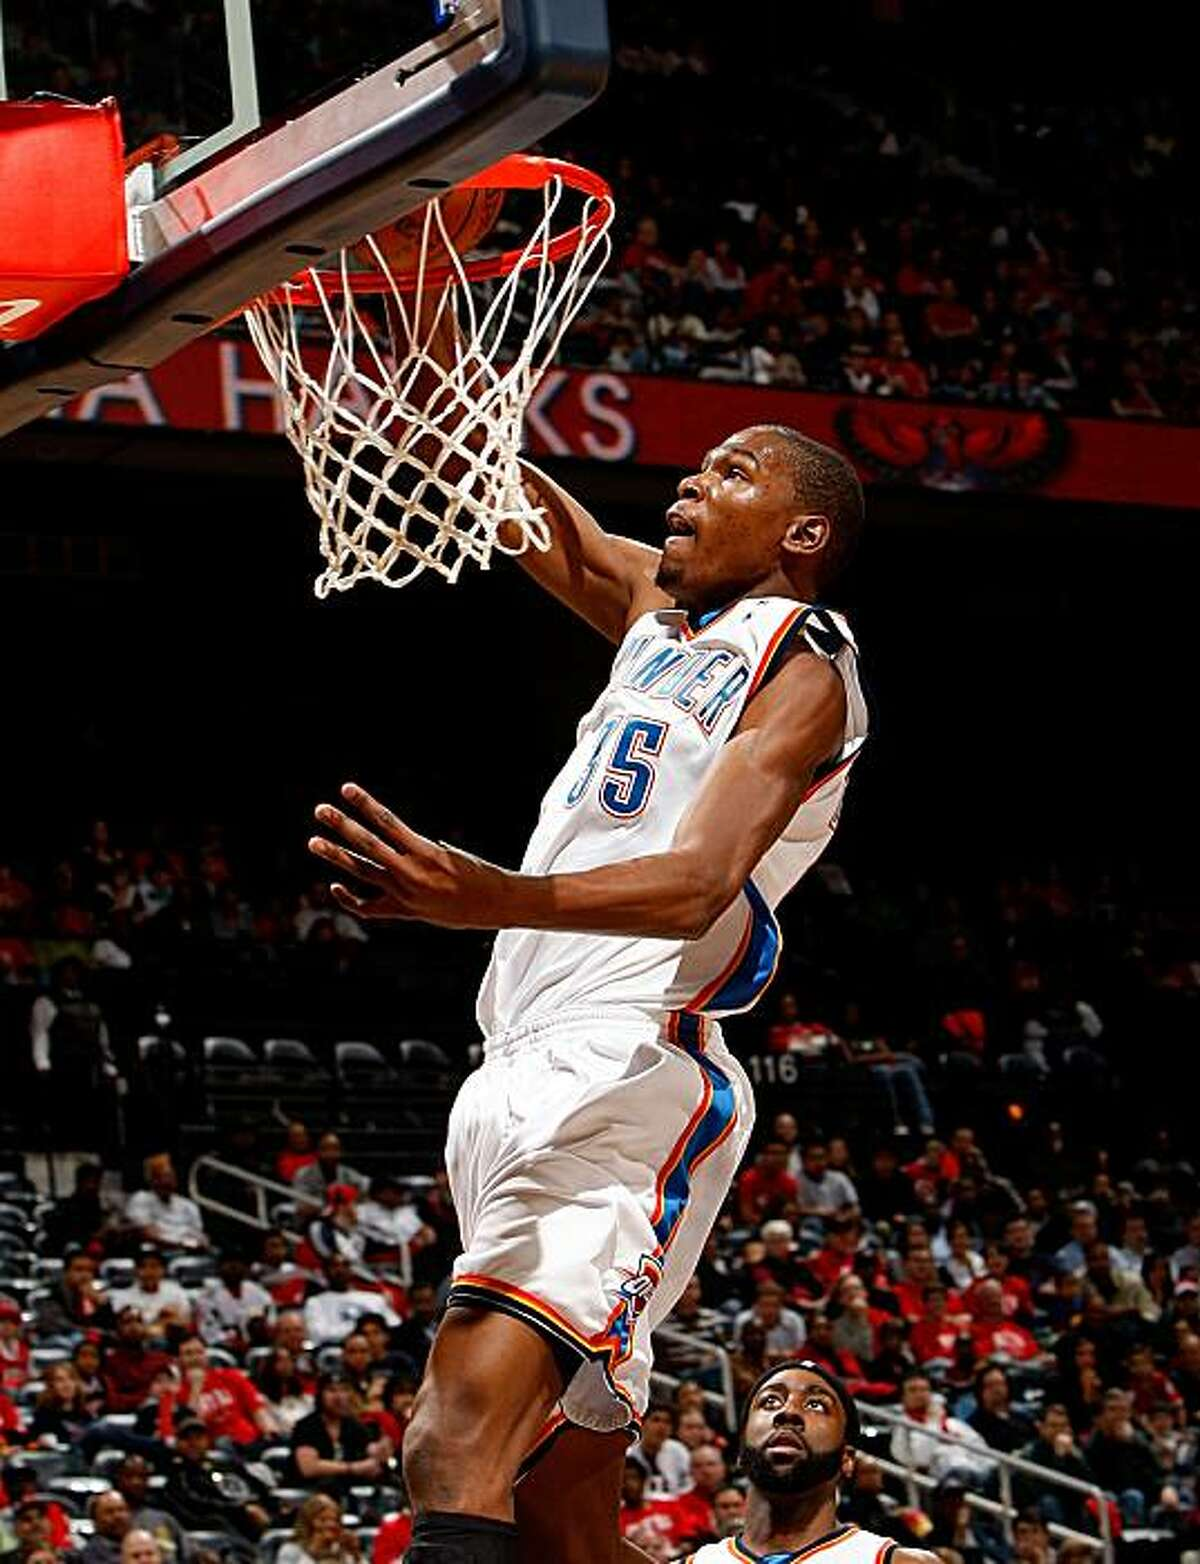 ATLANTA - JANUARY 18: Kevin Durant #35 of the Oklahoma City Thunder dunks against the Atlanta Hawks at Philips Arena on January 18, 2010 in Atlanta, Georgia. NOTE TO USER: User expressly acknowledges and agrees that, by downloading and/or using this Photograph, User is consenting to the terms and conditions of the Getty Images License Agreement.